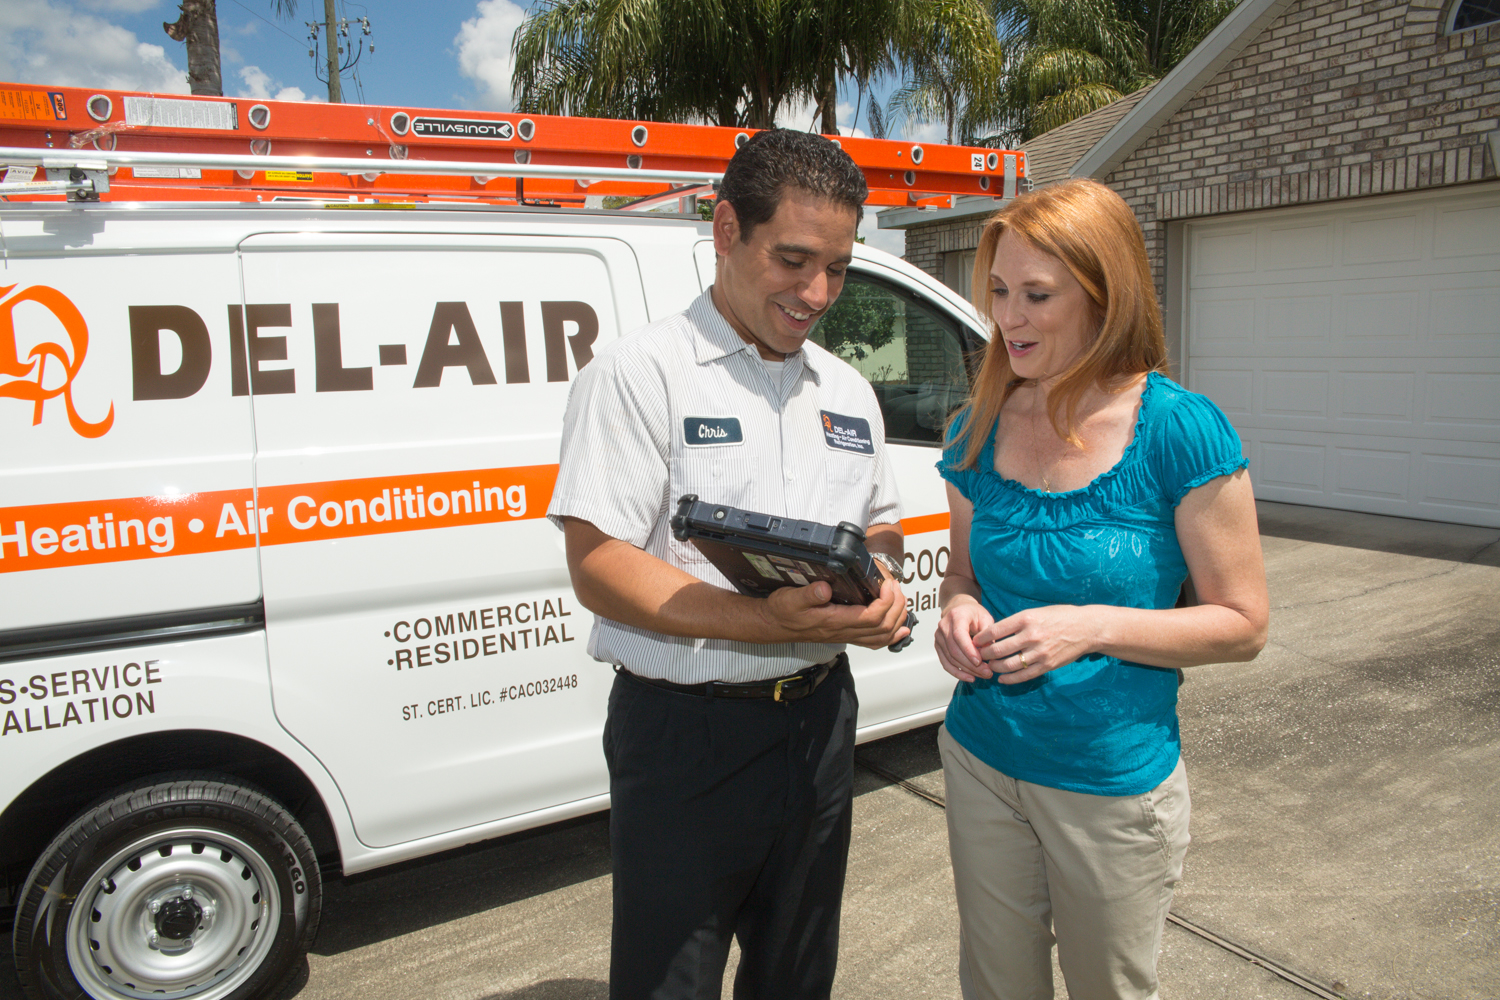 Del-Air Heating and Air Conditioning image 2